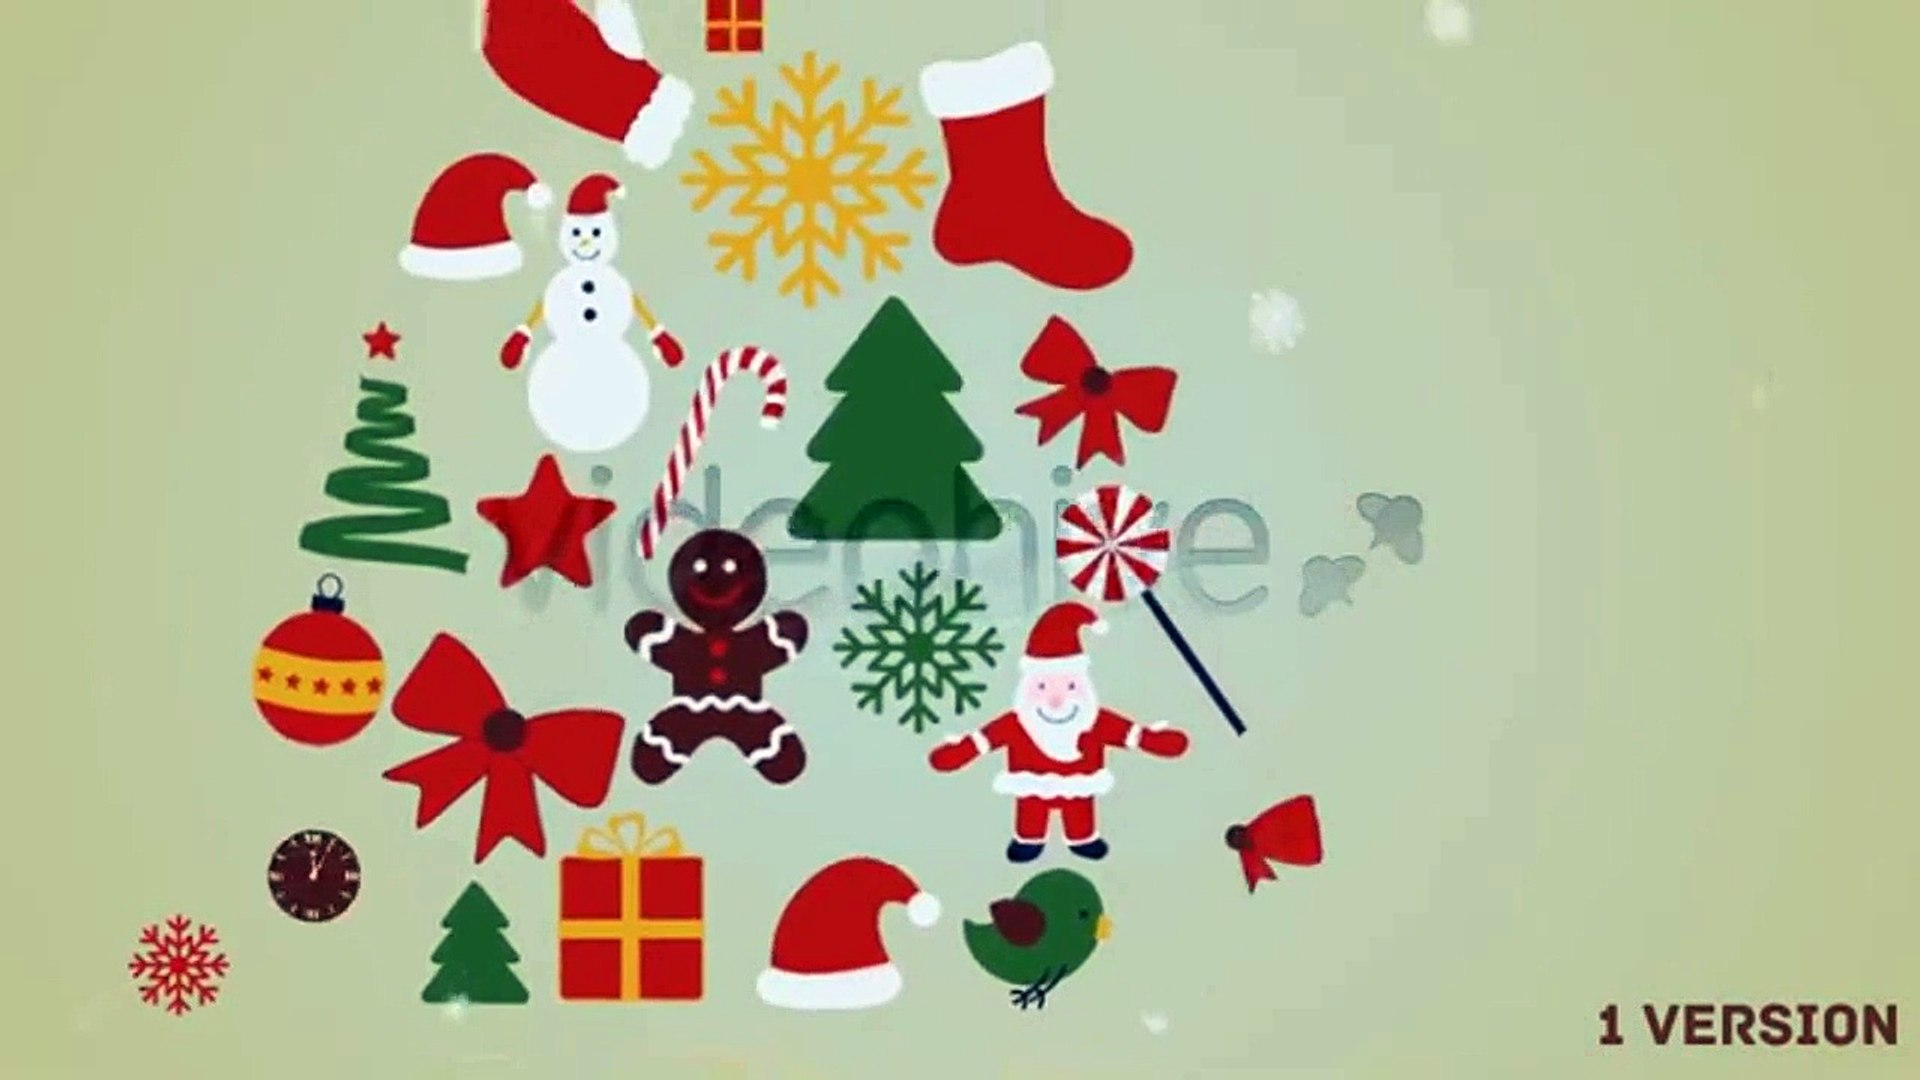 Christmas New Year Greetings & 20 elements | After Effects Template | Project Files - Videohive